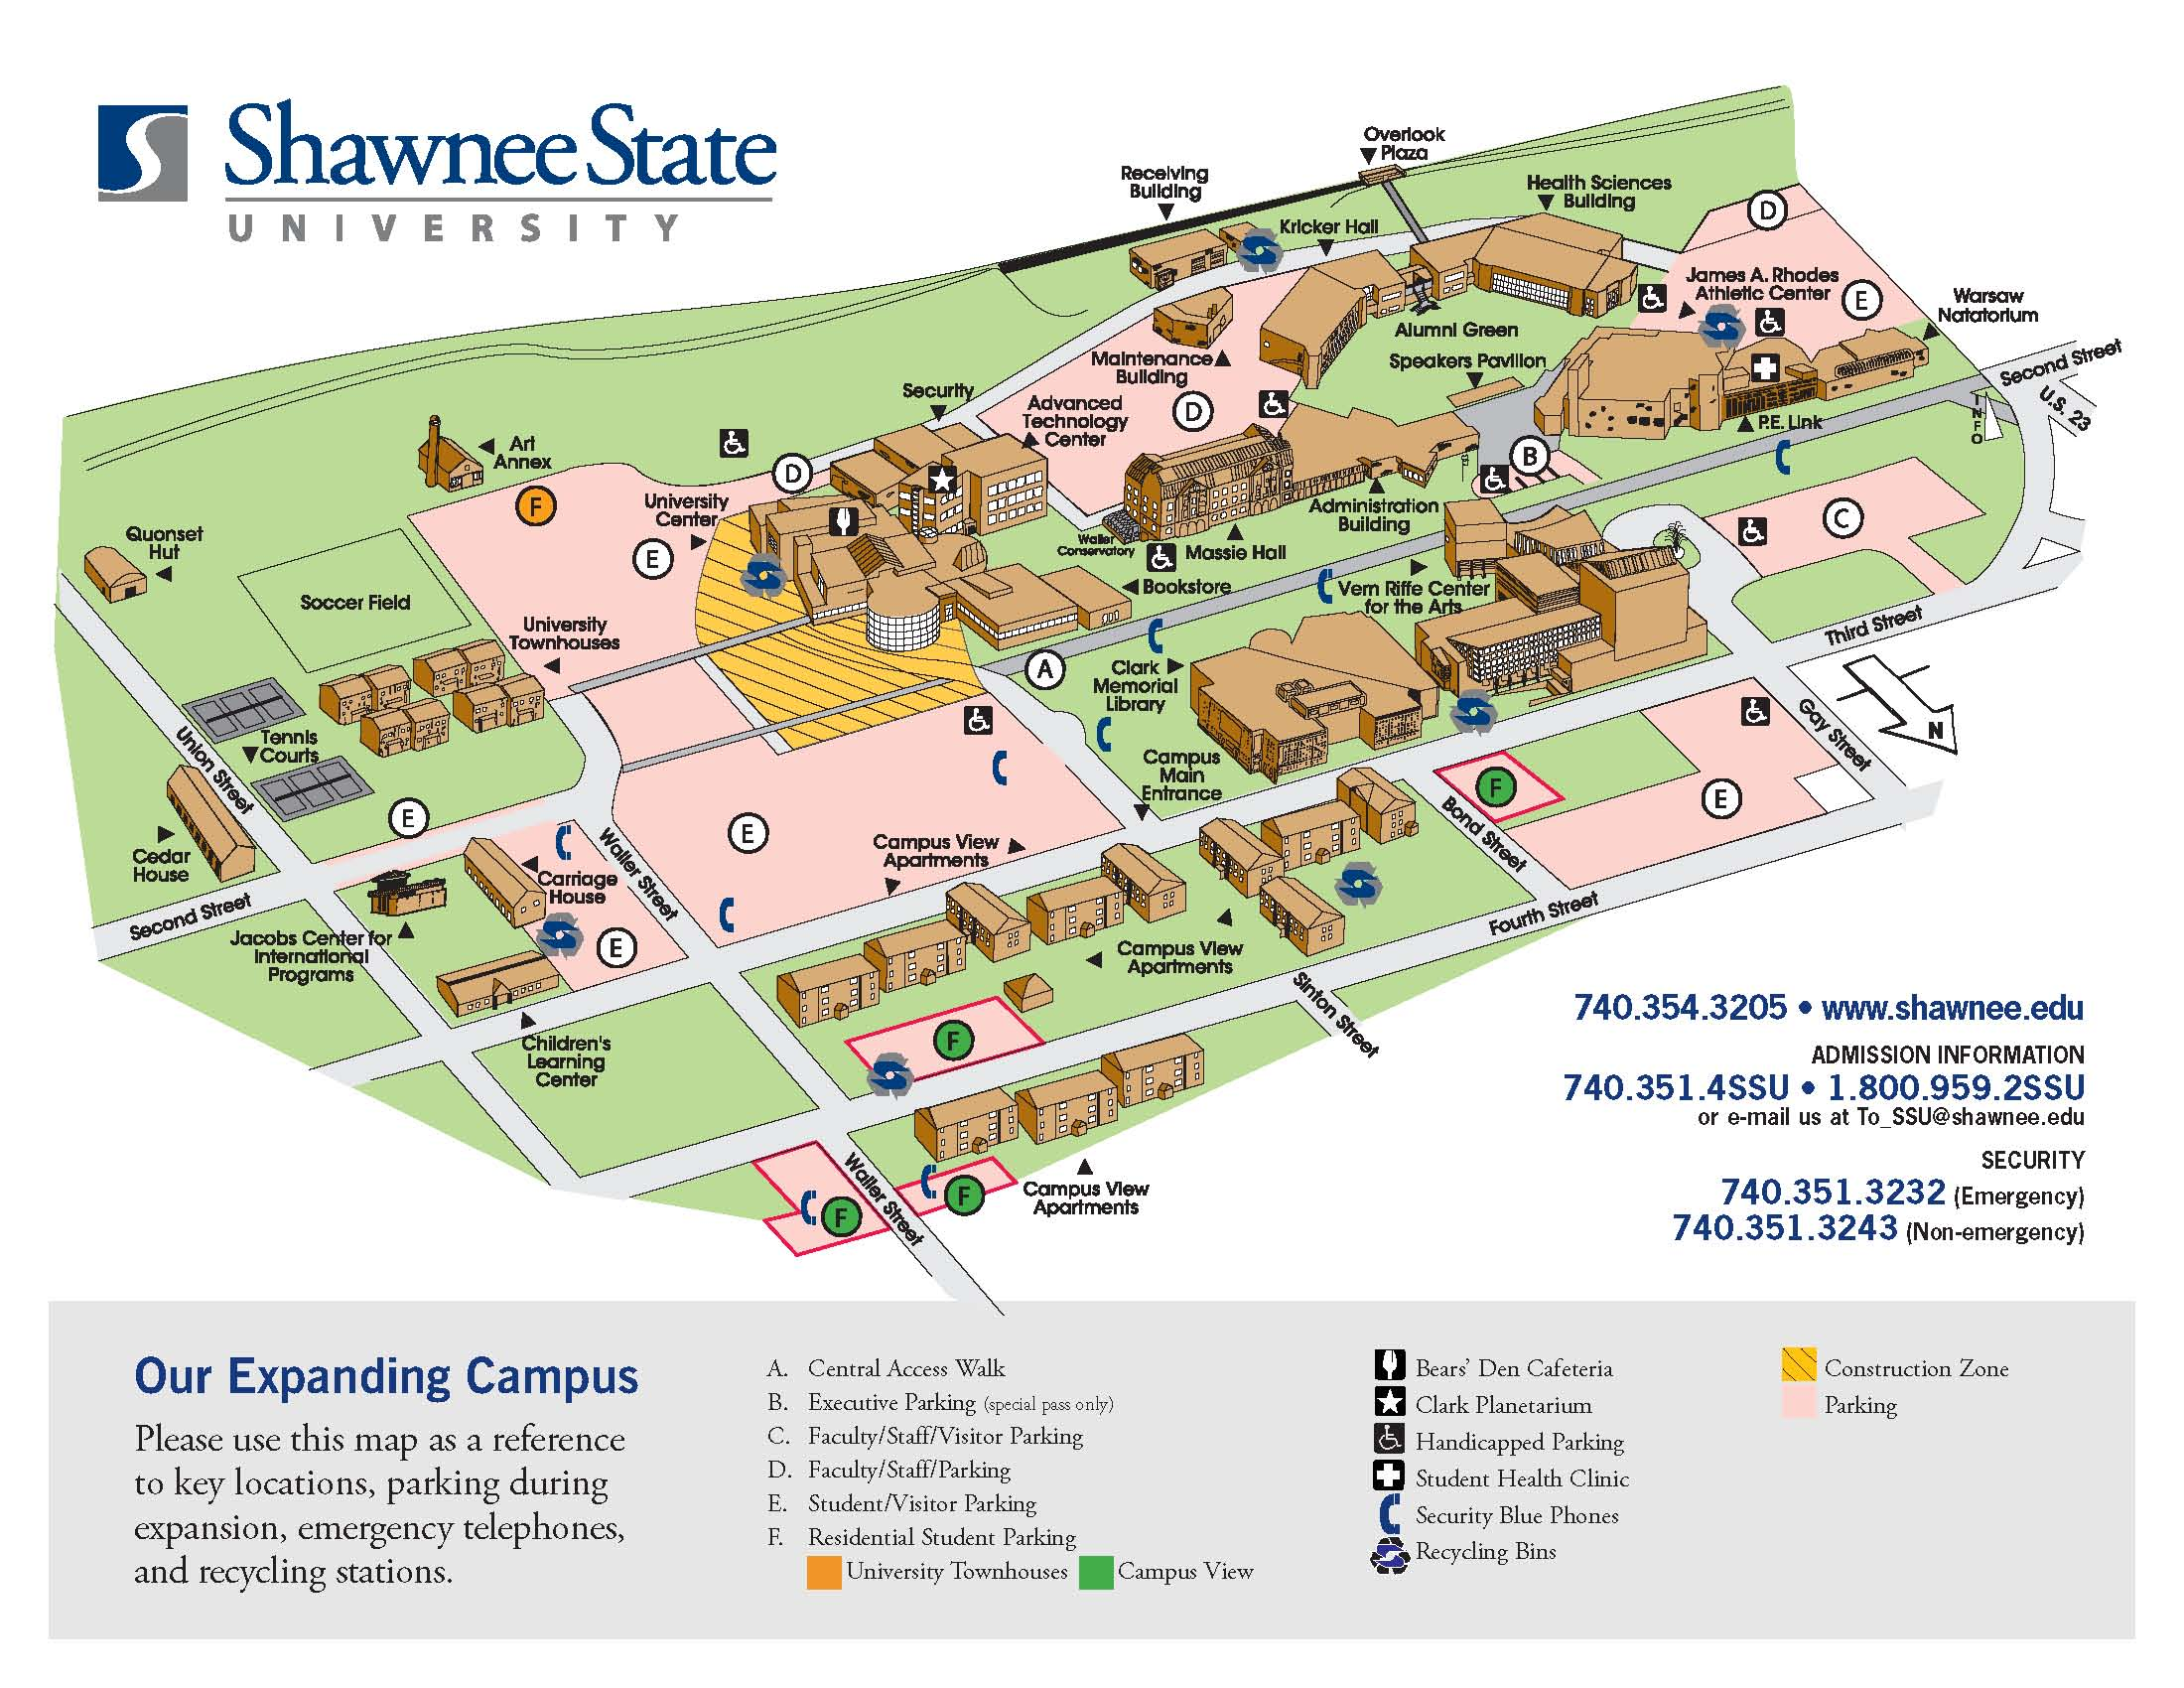 Campus Map / Directions - Shawnee State University - Acalog ... on shinnecock indian nation map, santa fe map, lochbuie map, northwest oklahoma city map, inola map, raytown map, alabama-coushatta tribe of texas map, ohio national map, bennettsville map, northwest indian war map, alcova map, town of wheatfield map, cedartown map, boston map, charleston map, winnebago tribe of nebraska map, idabel ok map, eastern band of cherokee indians map, medicine lodge map, coushatta tribe of louisiana map,